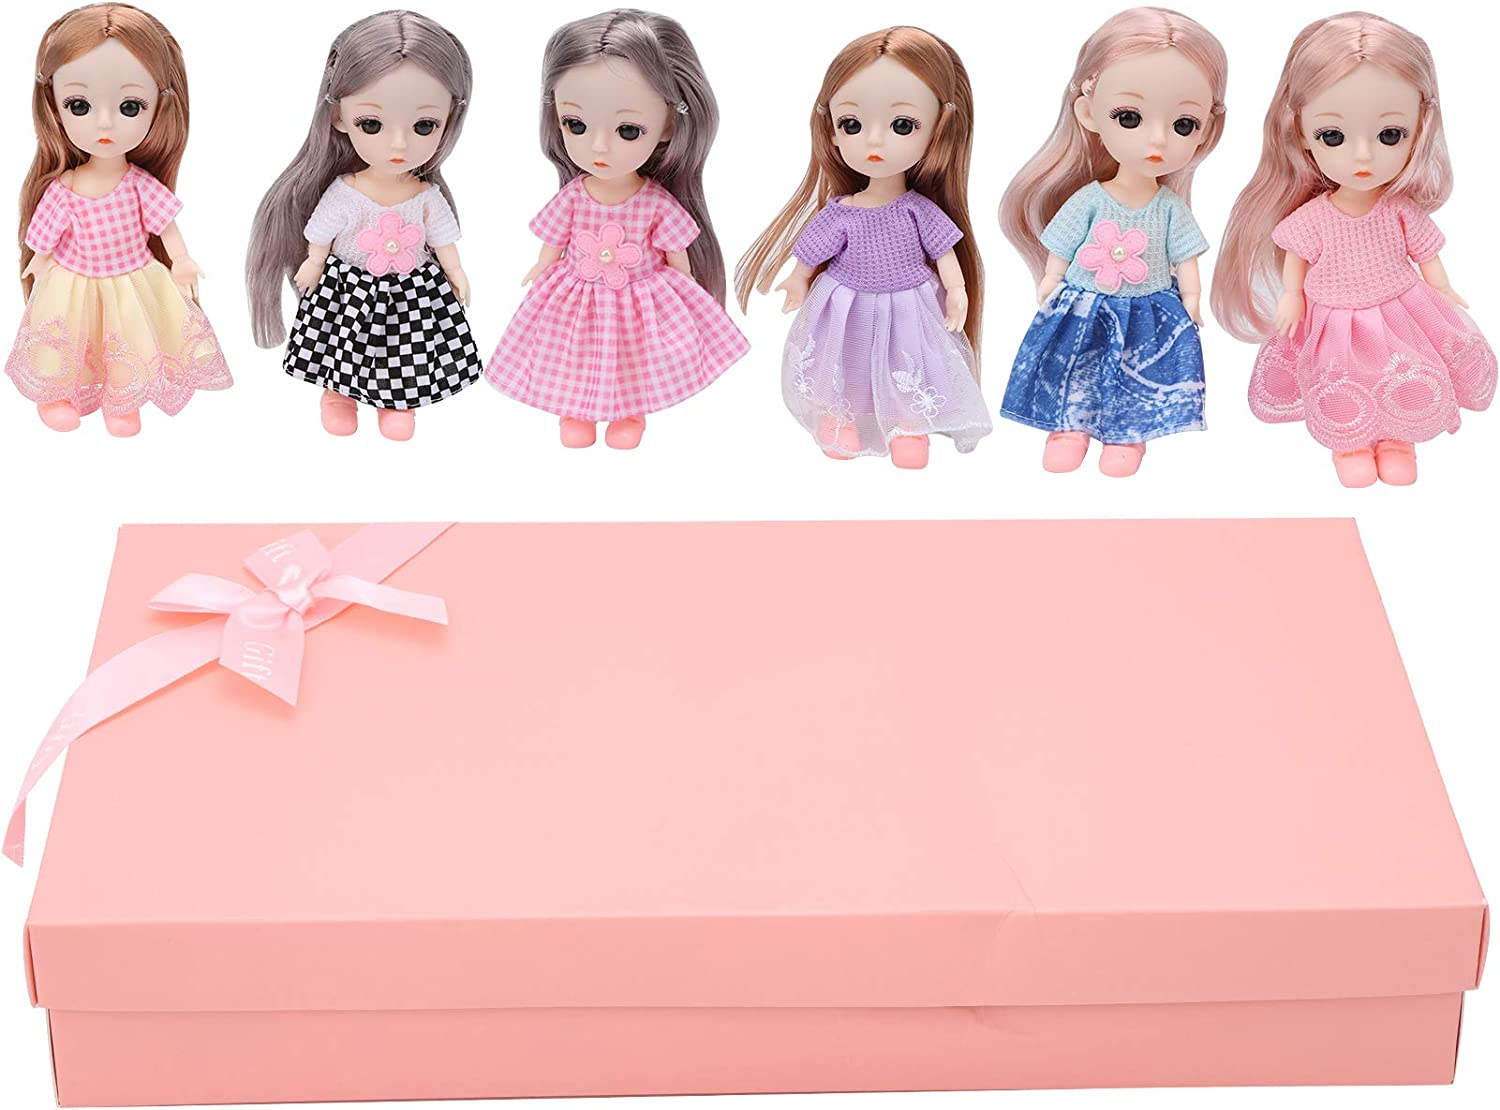 GLOGLOW Dolls Toys online shopping Fort Worth Mall Princess Collectible Baby Mini Doll DI